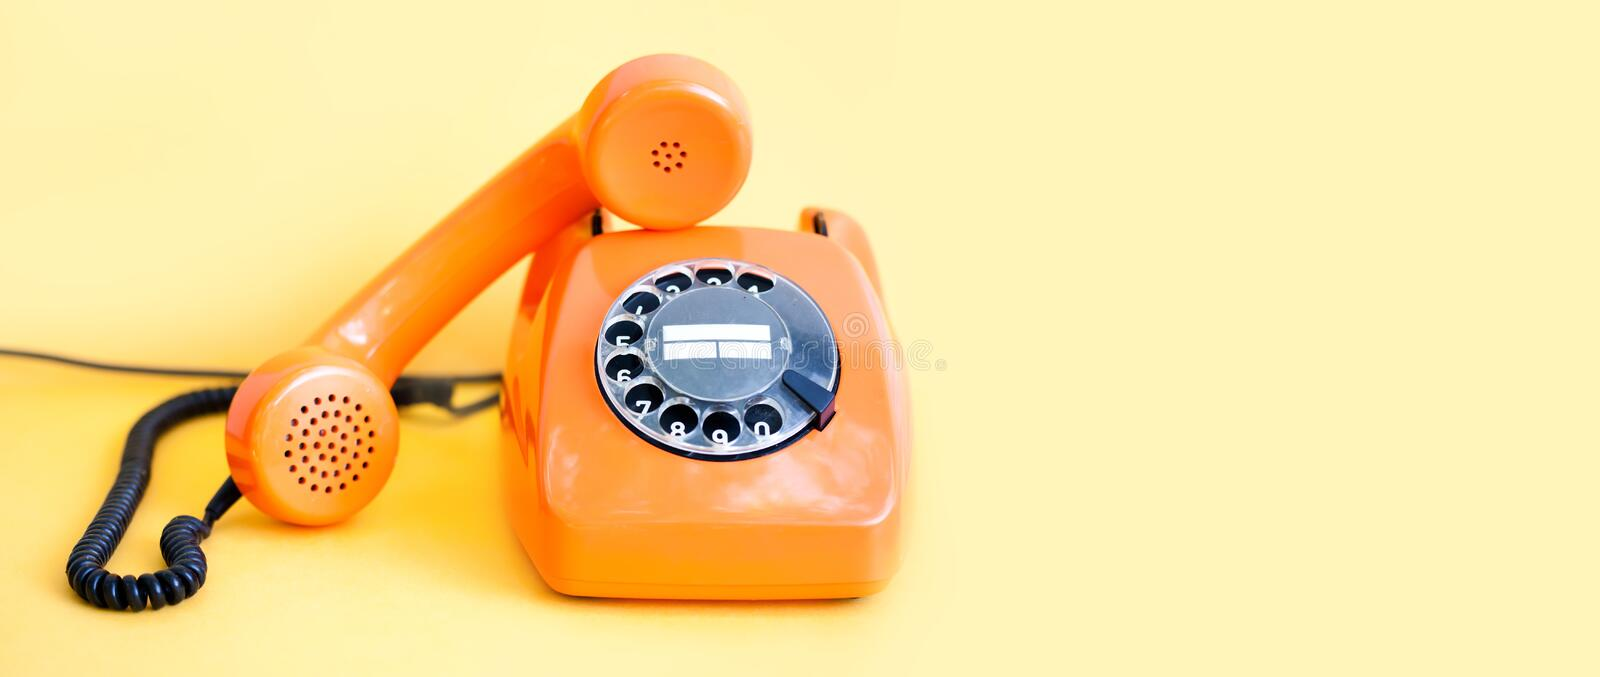 Vintage phone busy handset receiver on yellow background. Retro style orange telephone communication call center concept. Shallow depth field. copy space